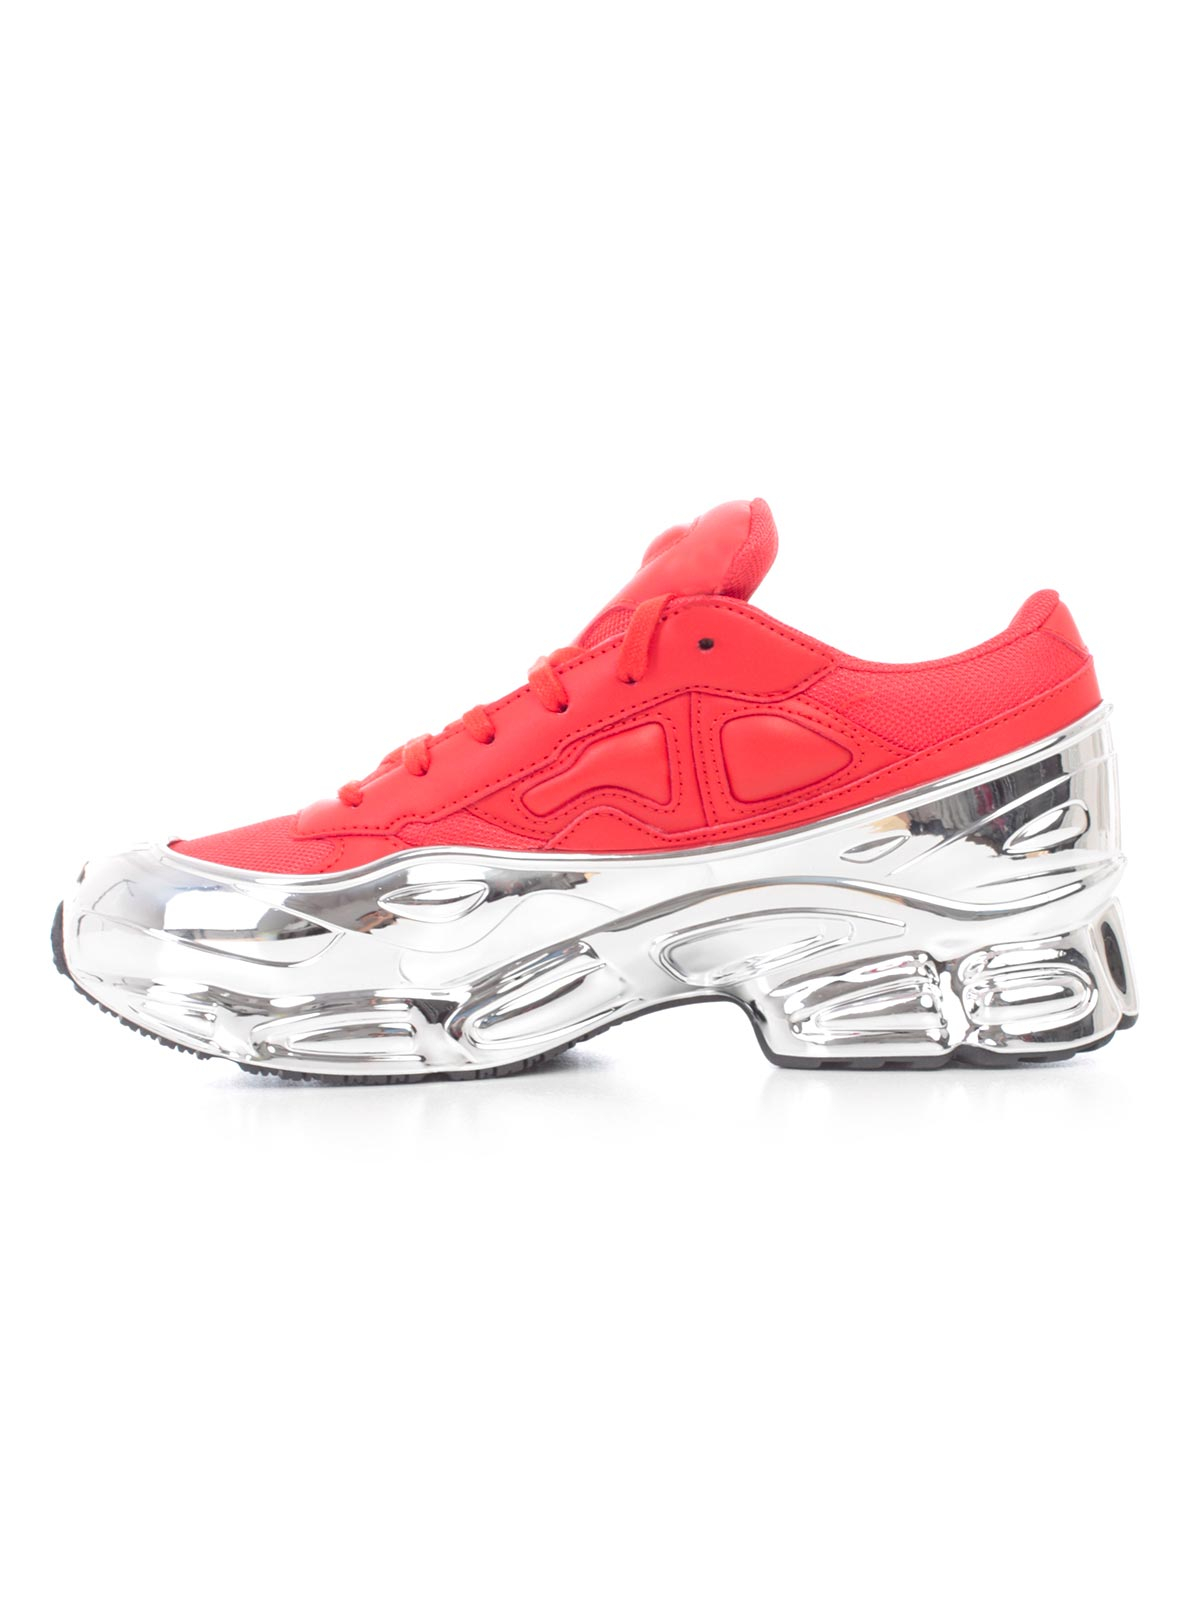 Adidas X Raf Simons Shoes EE7948 - RED